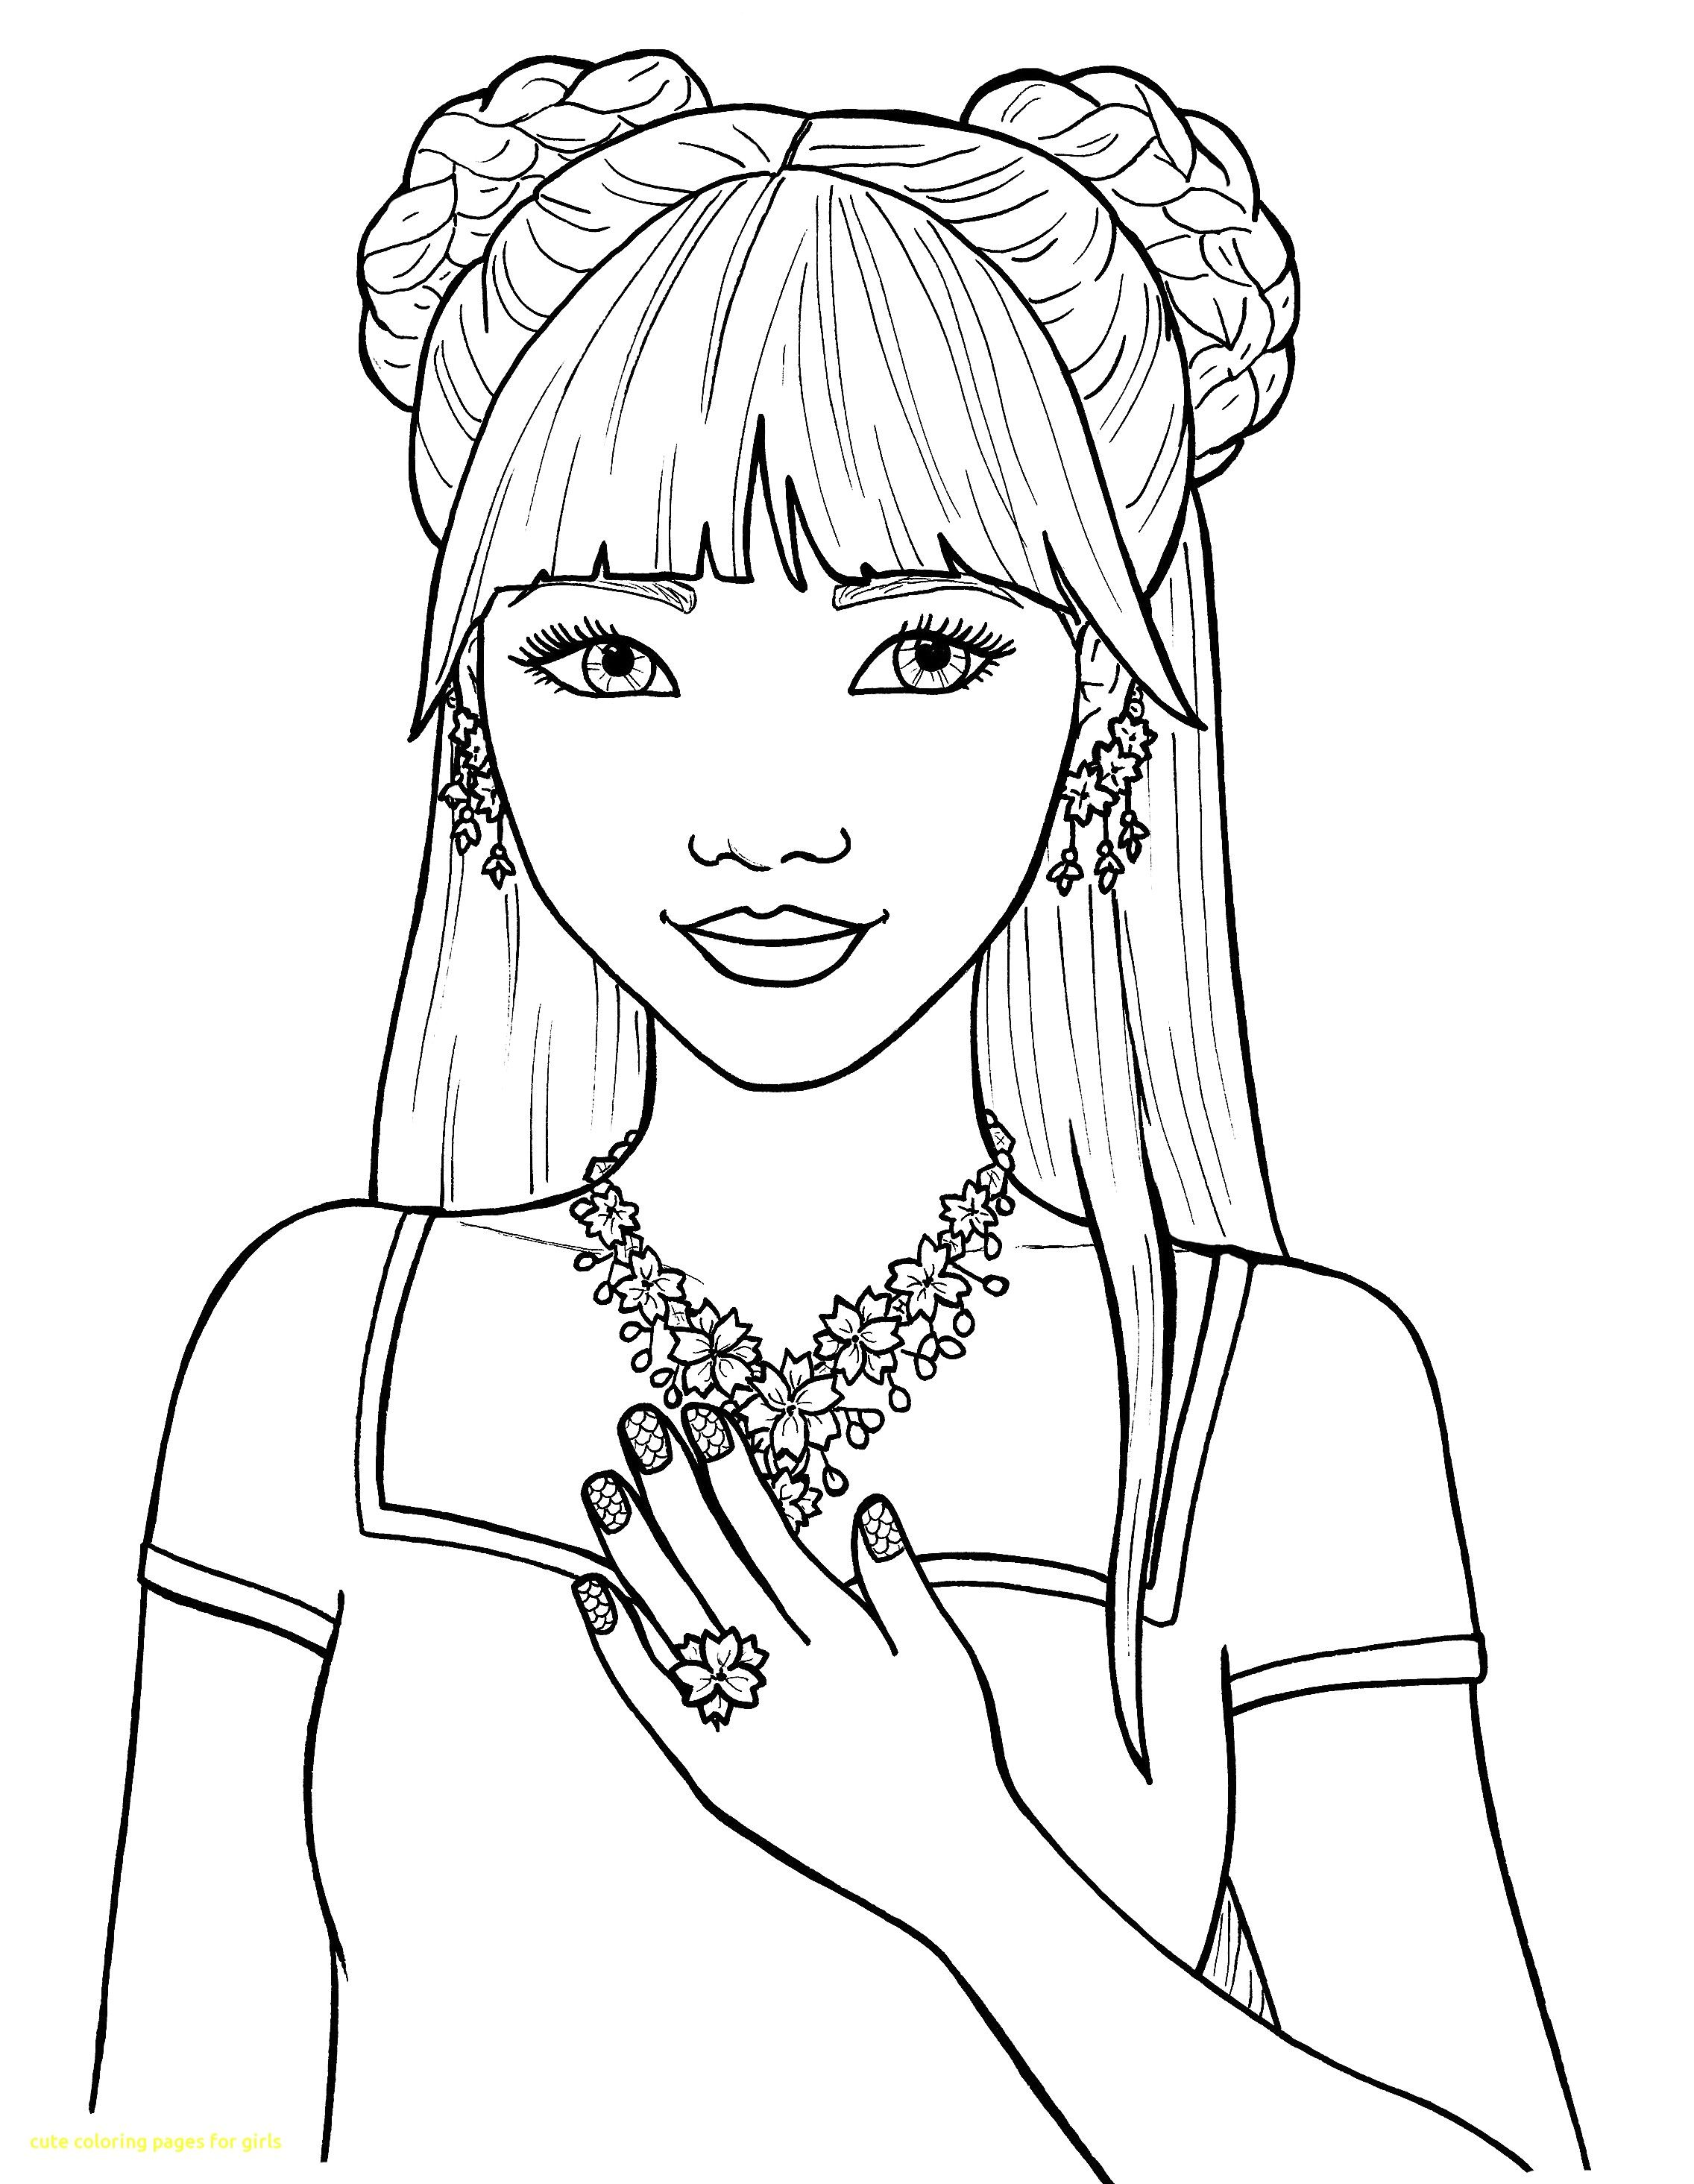 Cute Coloring Pages For Girls With Of Inside Teens Teenage